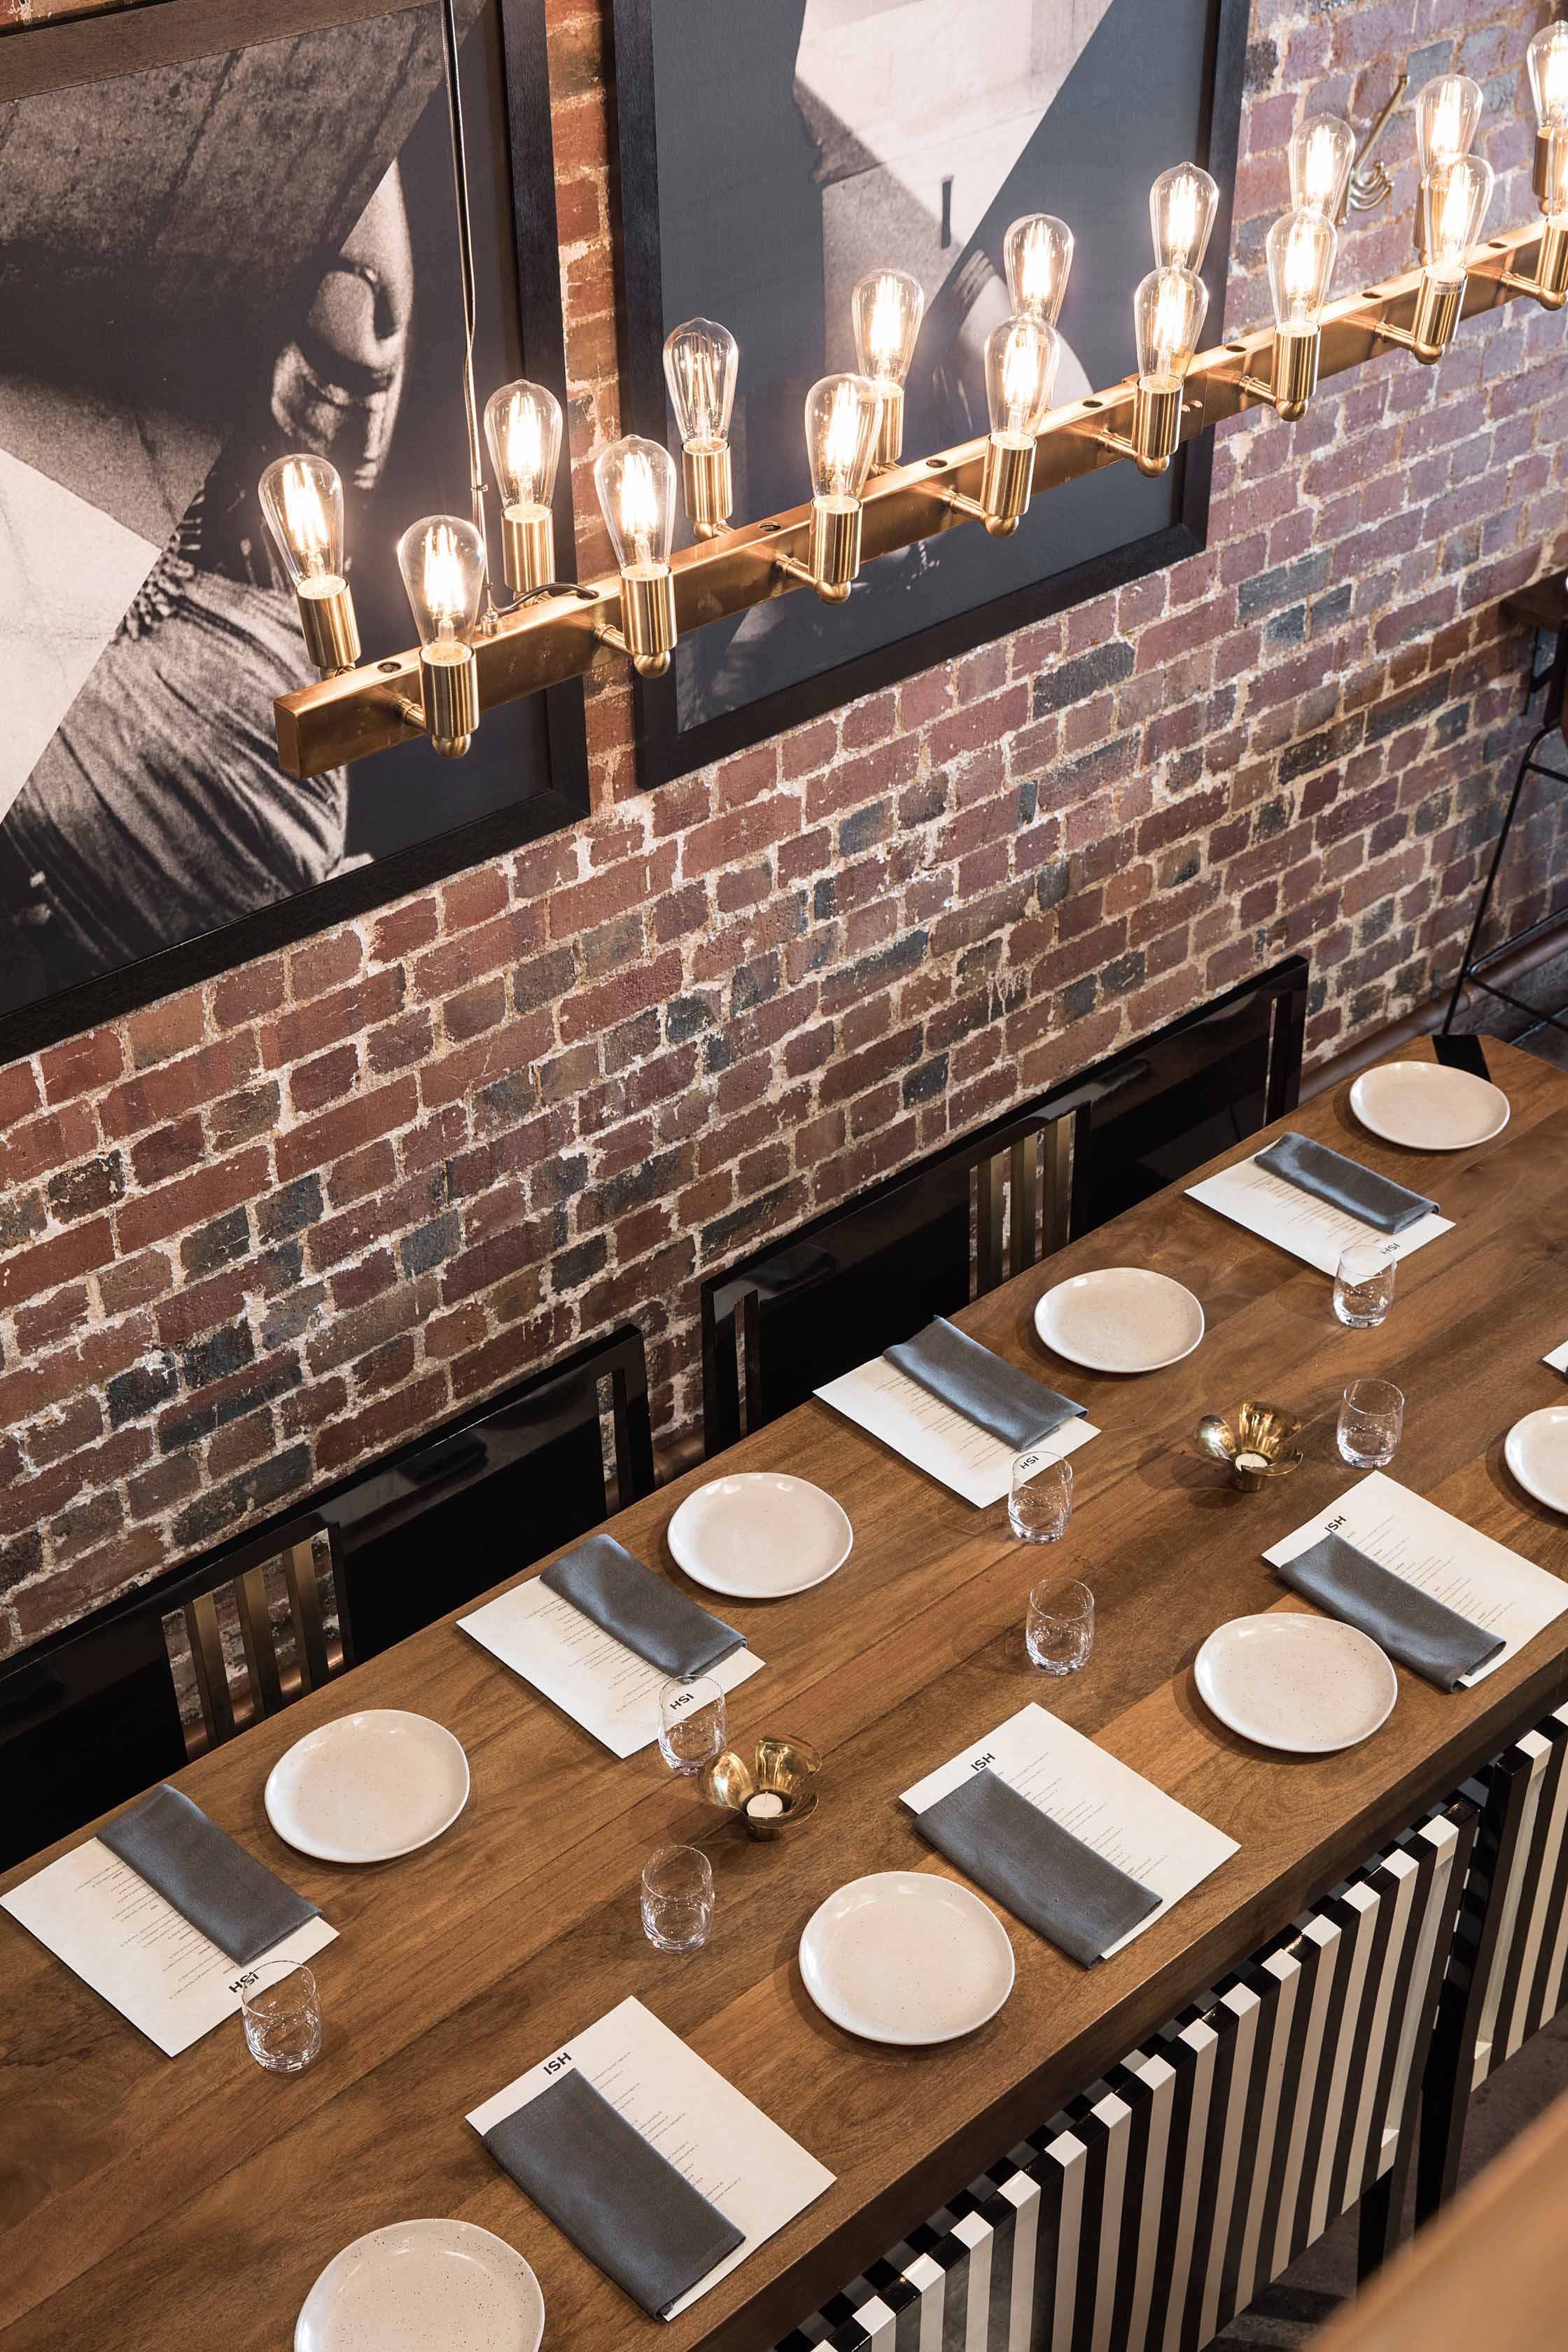 A long communal table and bespoke black and white-striped pews